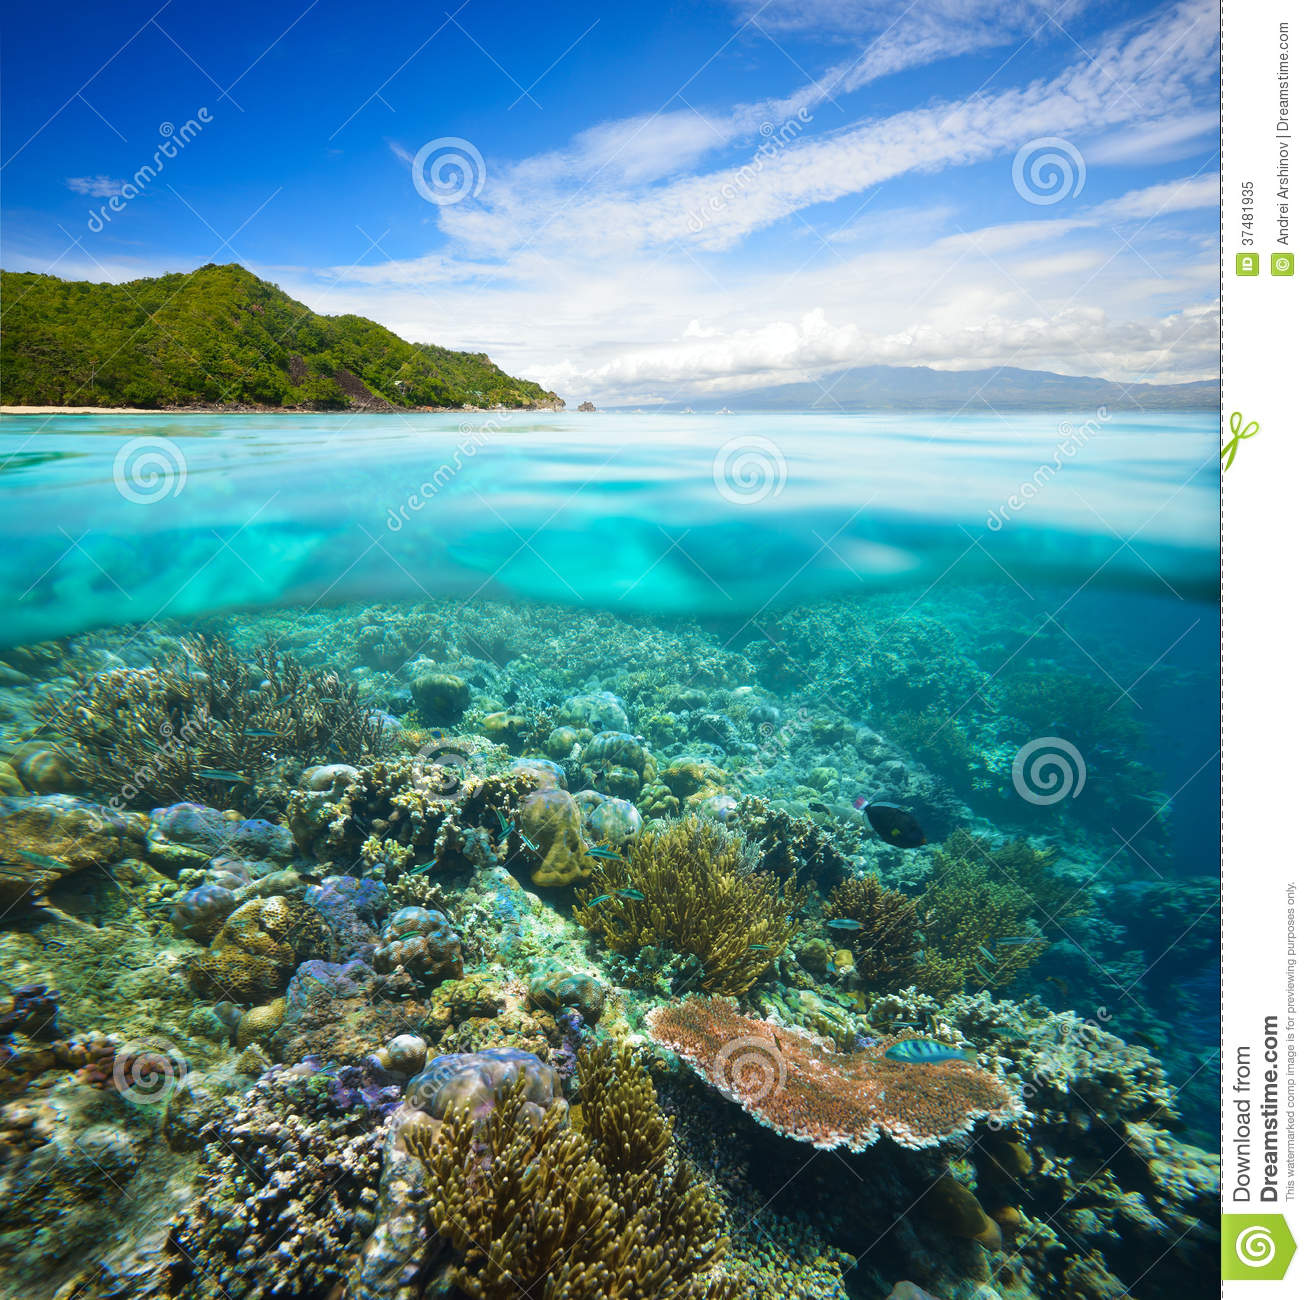 Coral Reef Background: Coral Reef On Background Of Cloudy Sky And Island Stock